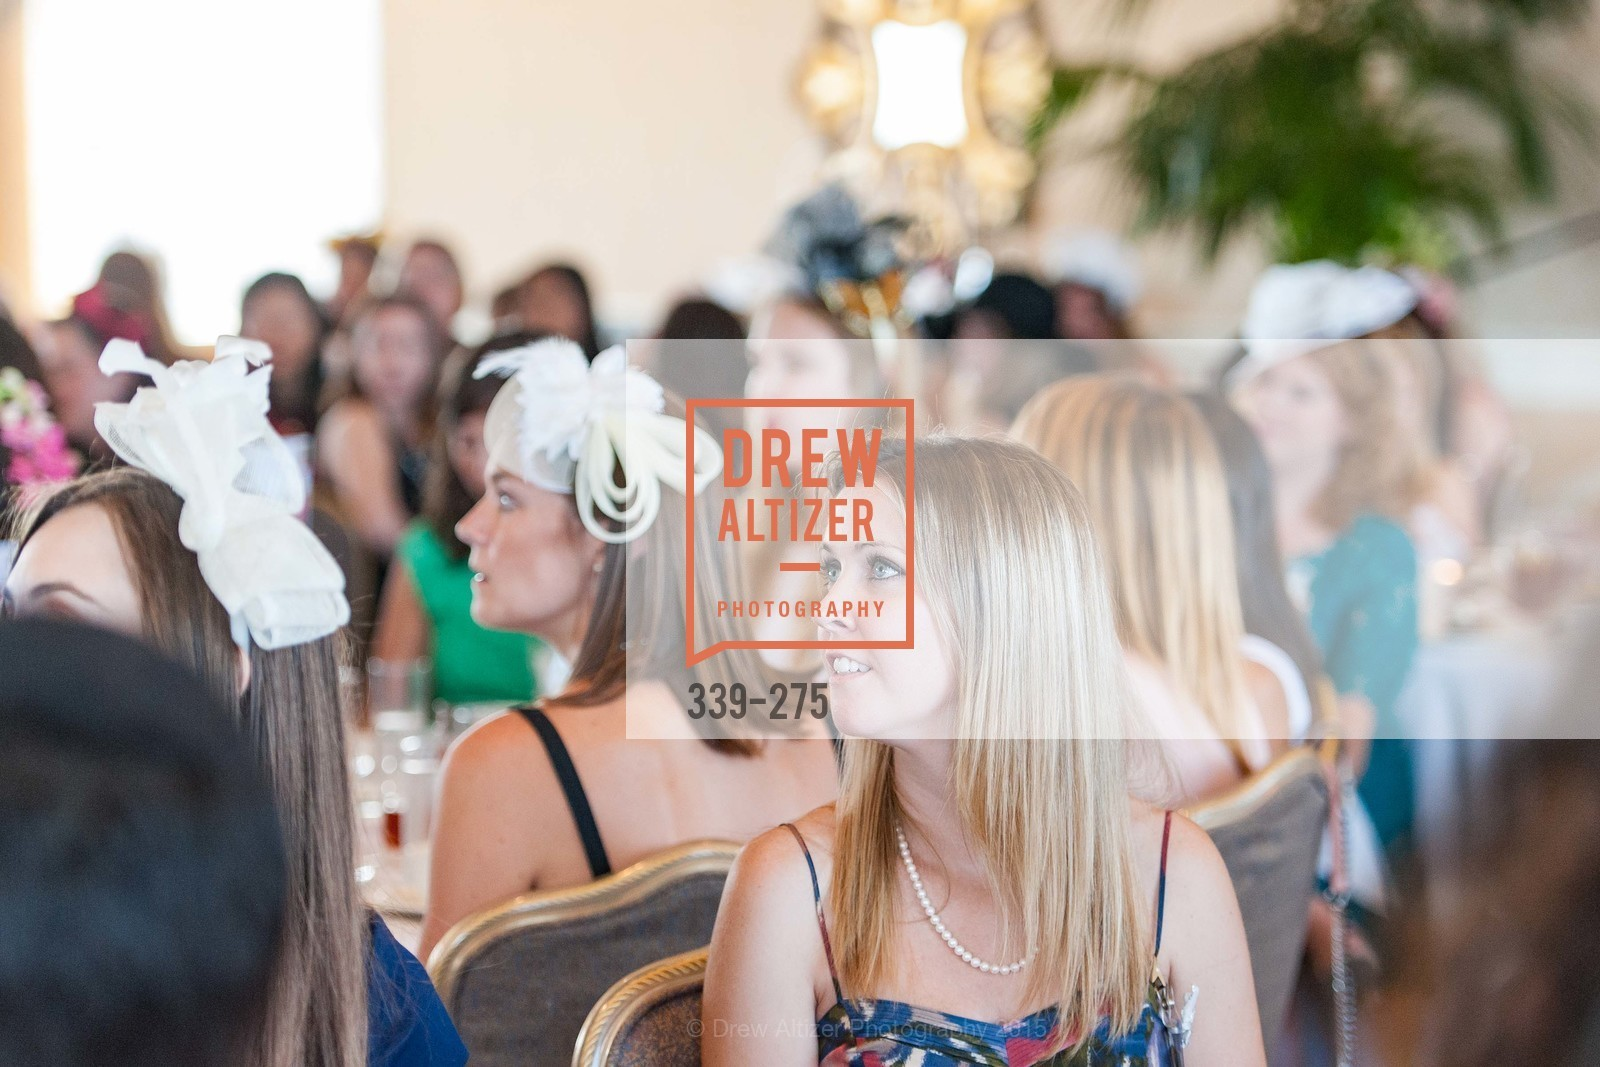 Extras, Spinsters of San Francisco New Member Tea 2015, August 30th, 2015, Photo,Drew Altizer, Drew Altizer Photography, full-service agency, private events, San Francisco photographer, photographer california